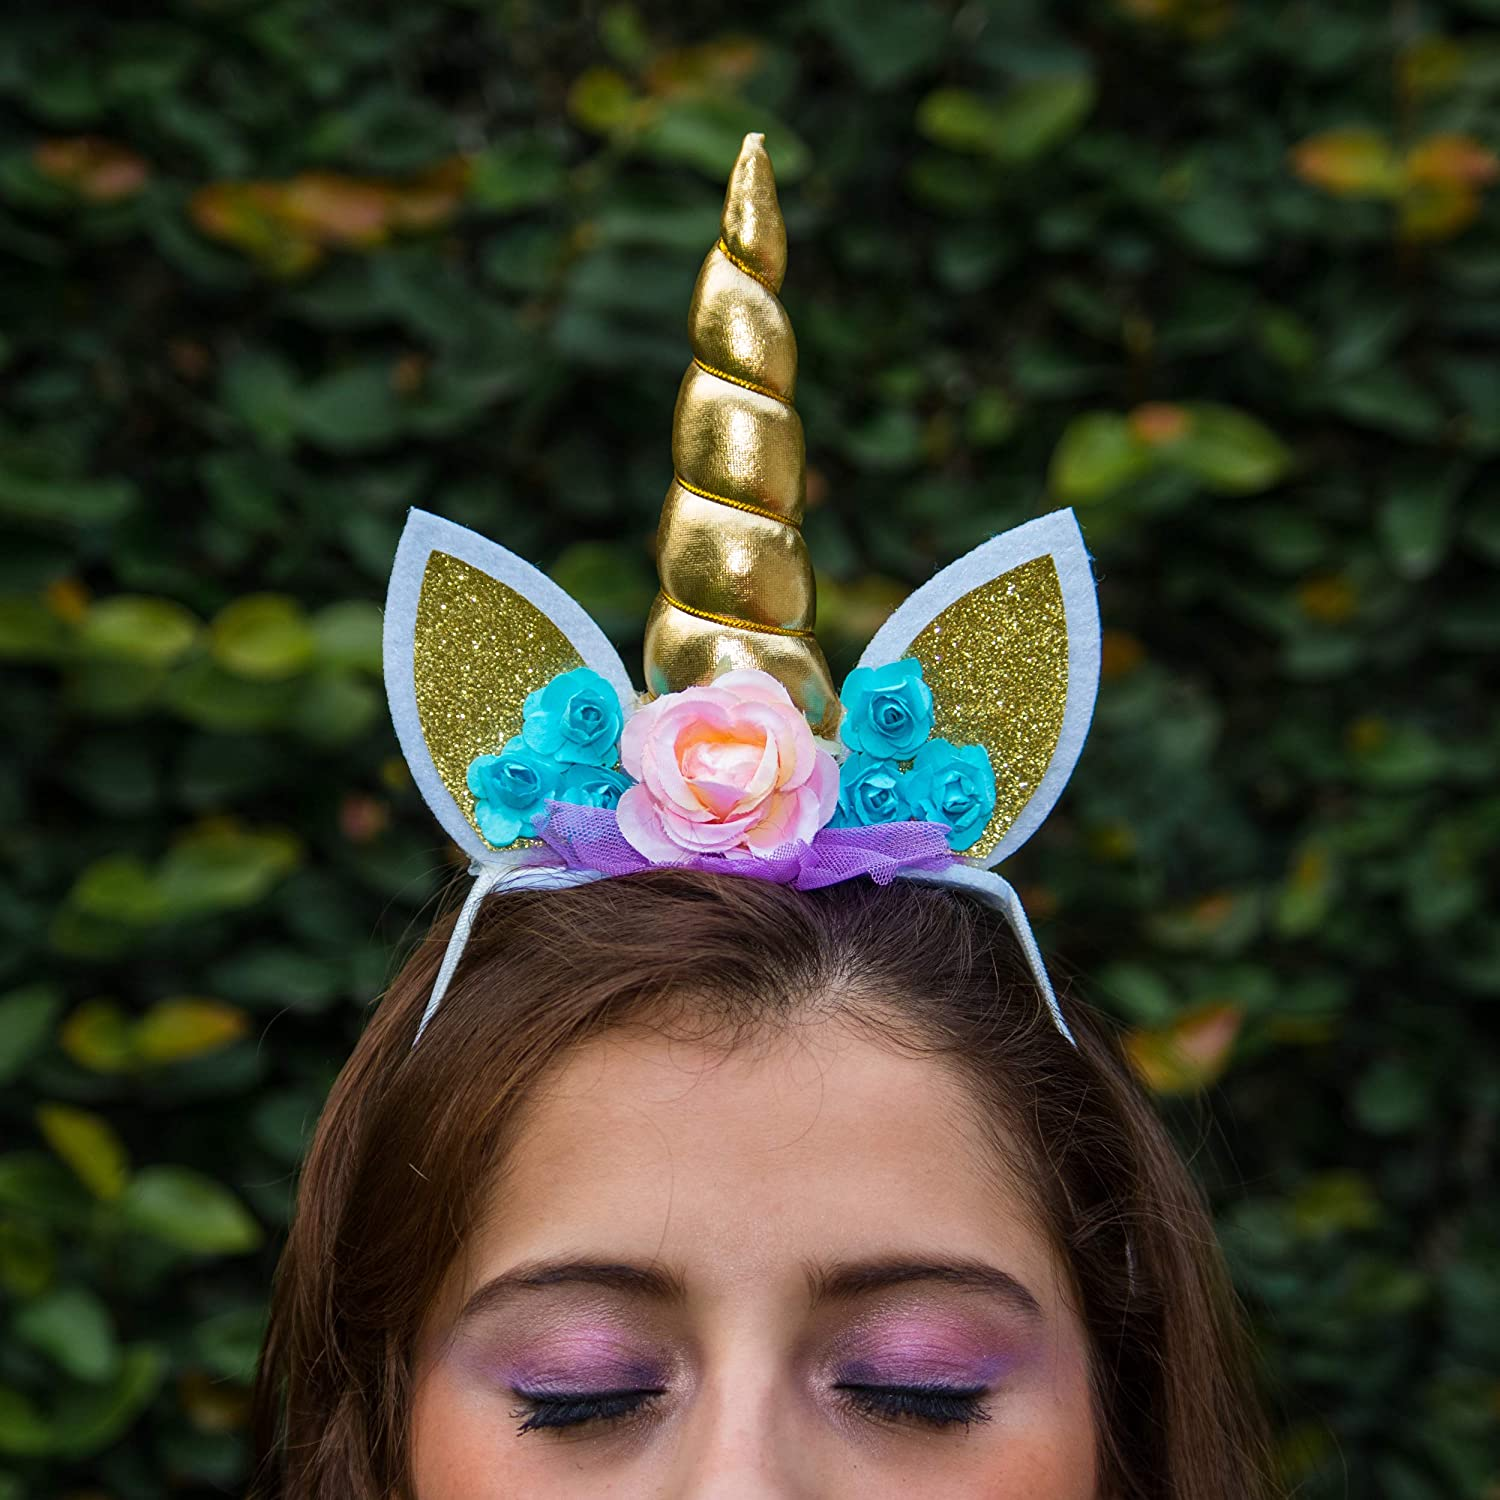 5 Padded Unicorn Horn UCH-040 Silver Iridescent Sequins